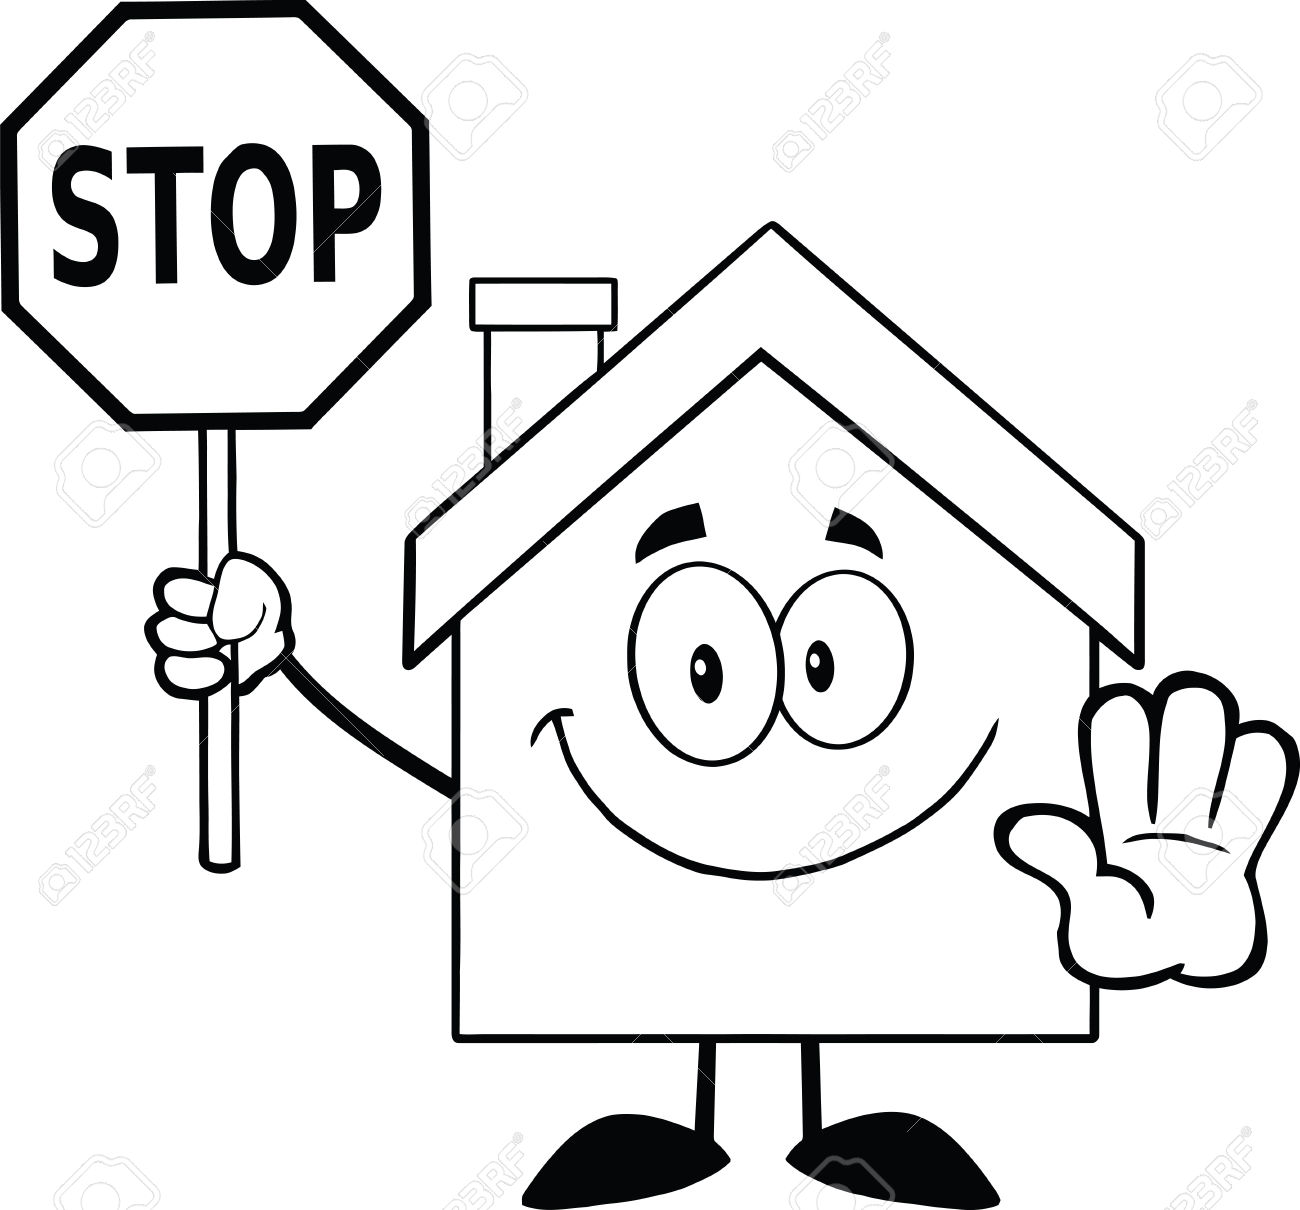 Black And White House Cartoon Character -Black And White House Cartoon Character Holding A Stop Sign. Print Save this clip art-18